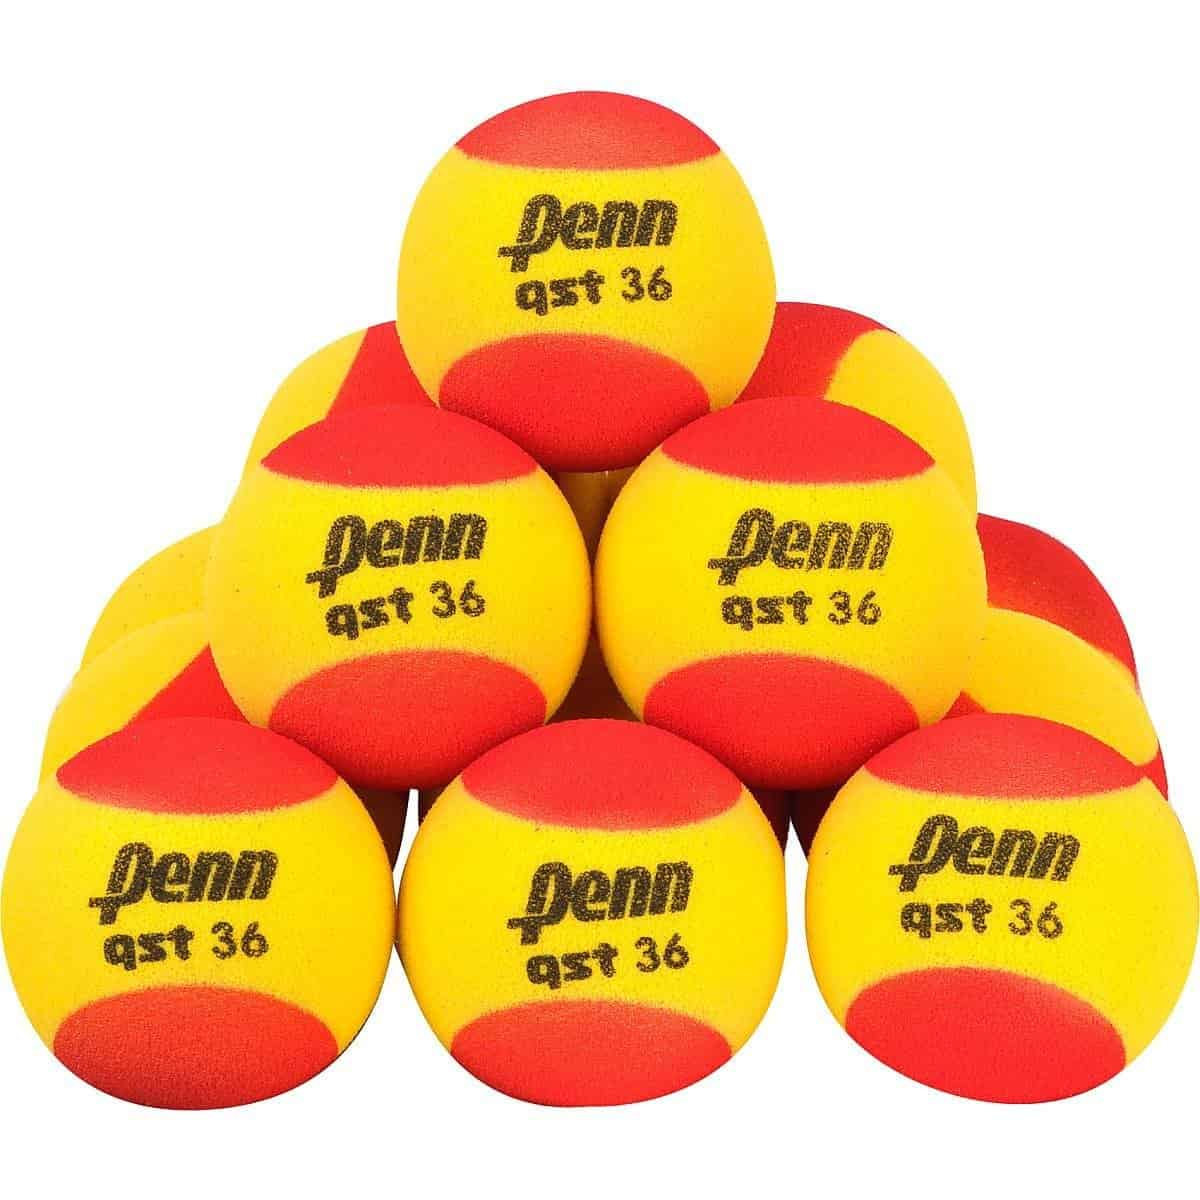 Penn Quick Start 36 Foam 12 Pack Tennis Balls 12 Pack